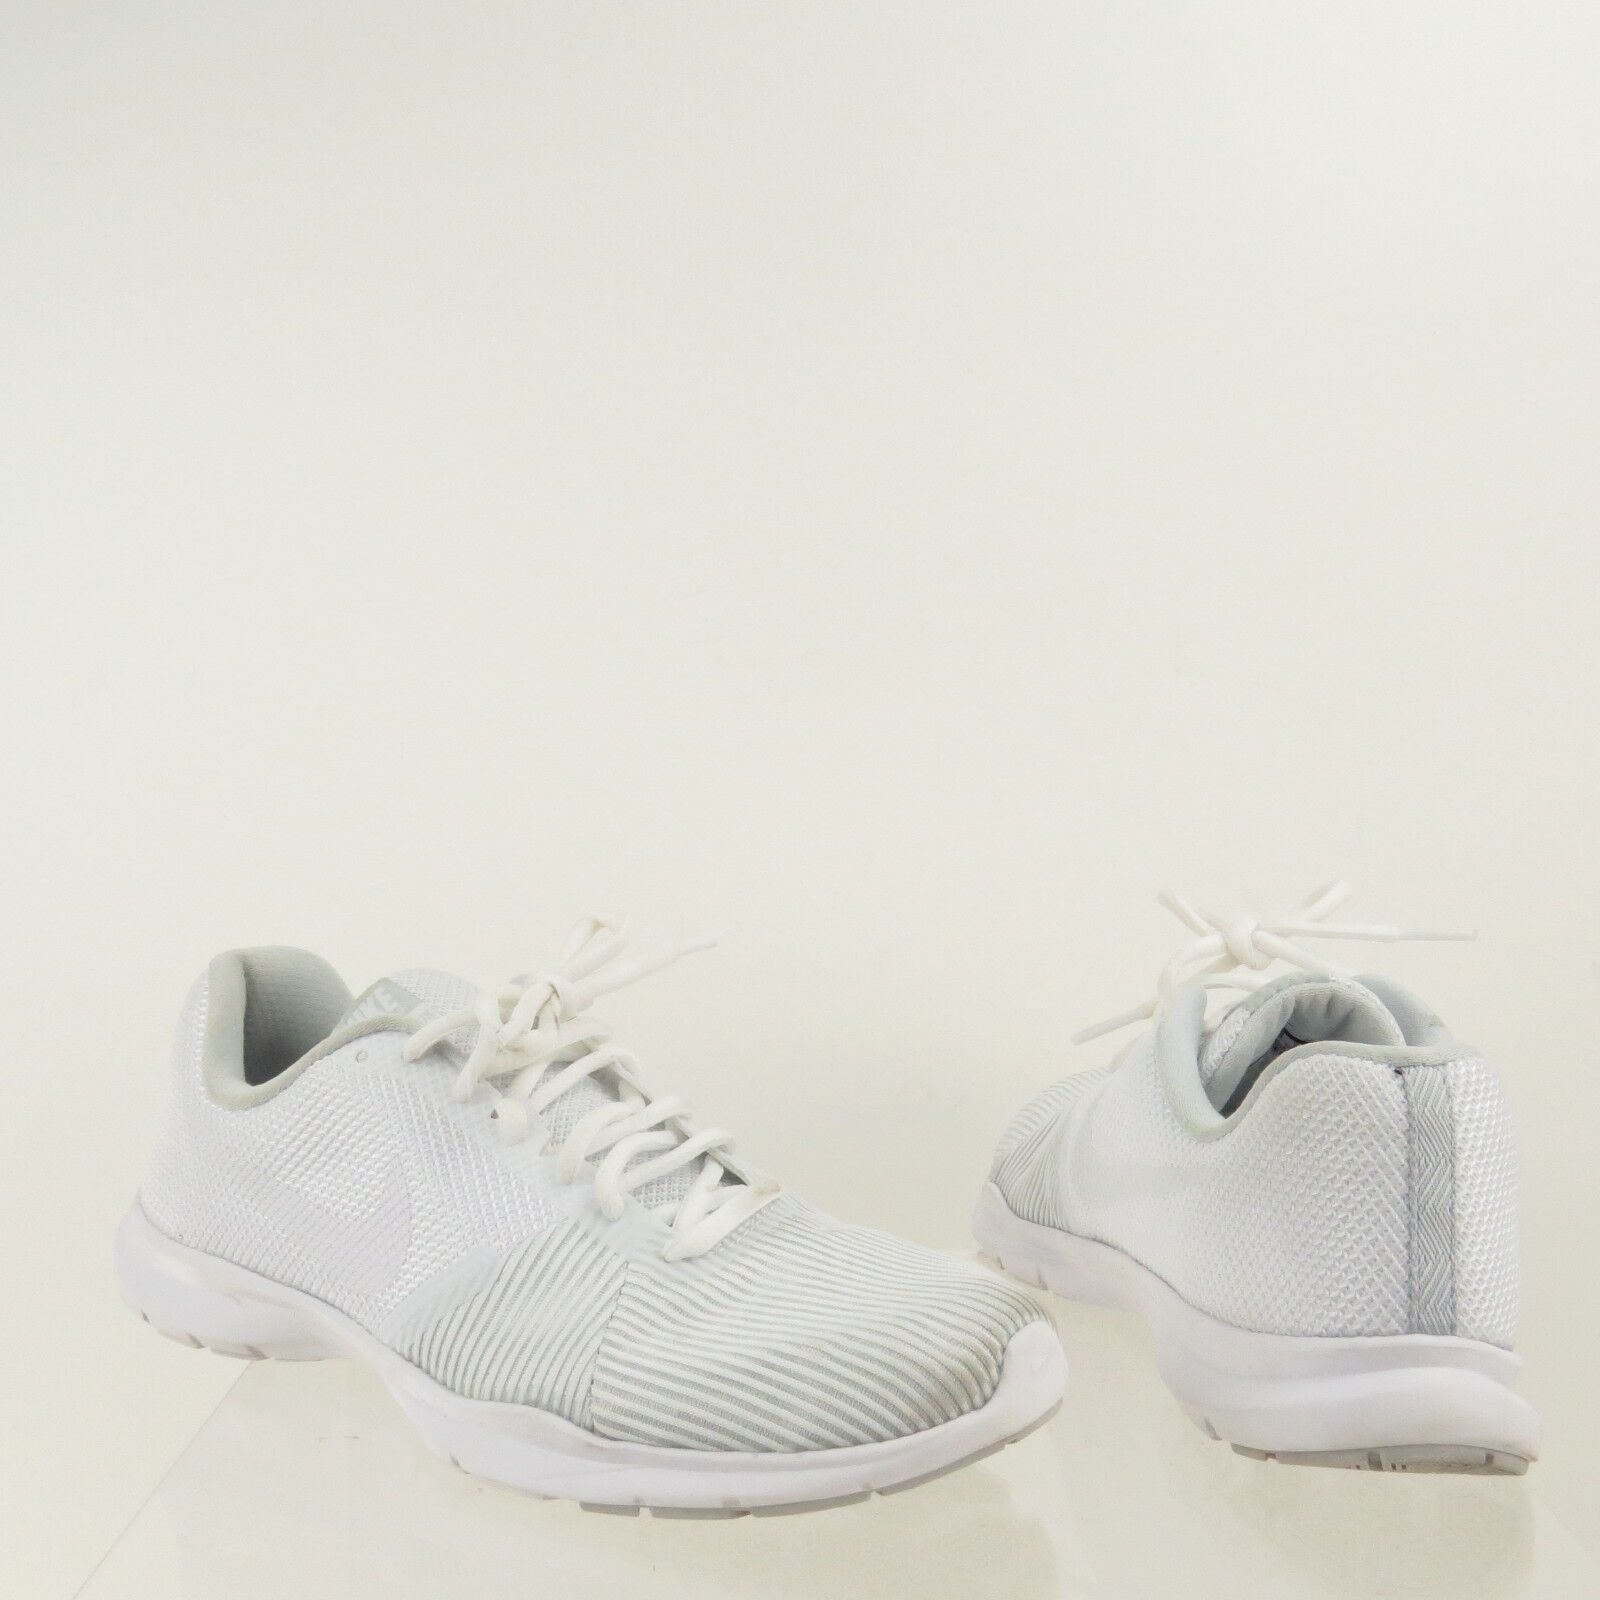 Women's Nike Flex Bijoux Shoes White Synthetic Running Sneakers Comfortable best-selling model of the brand